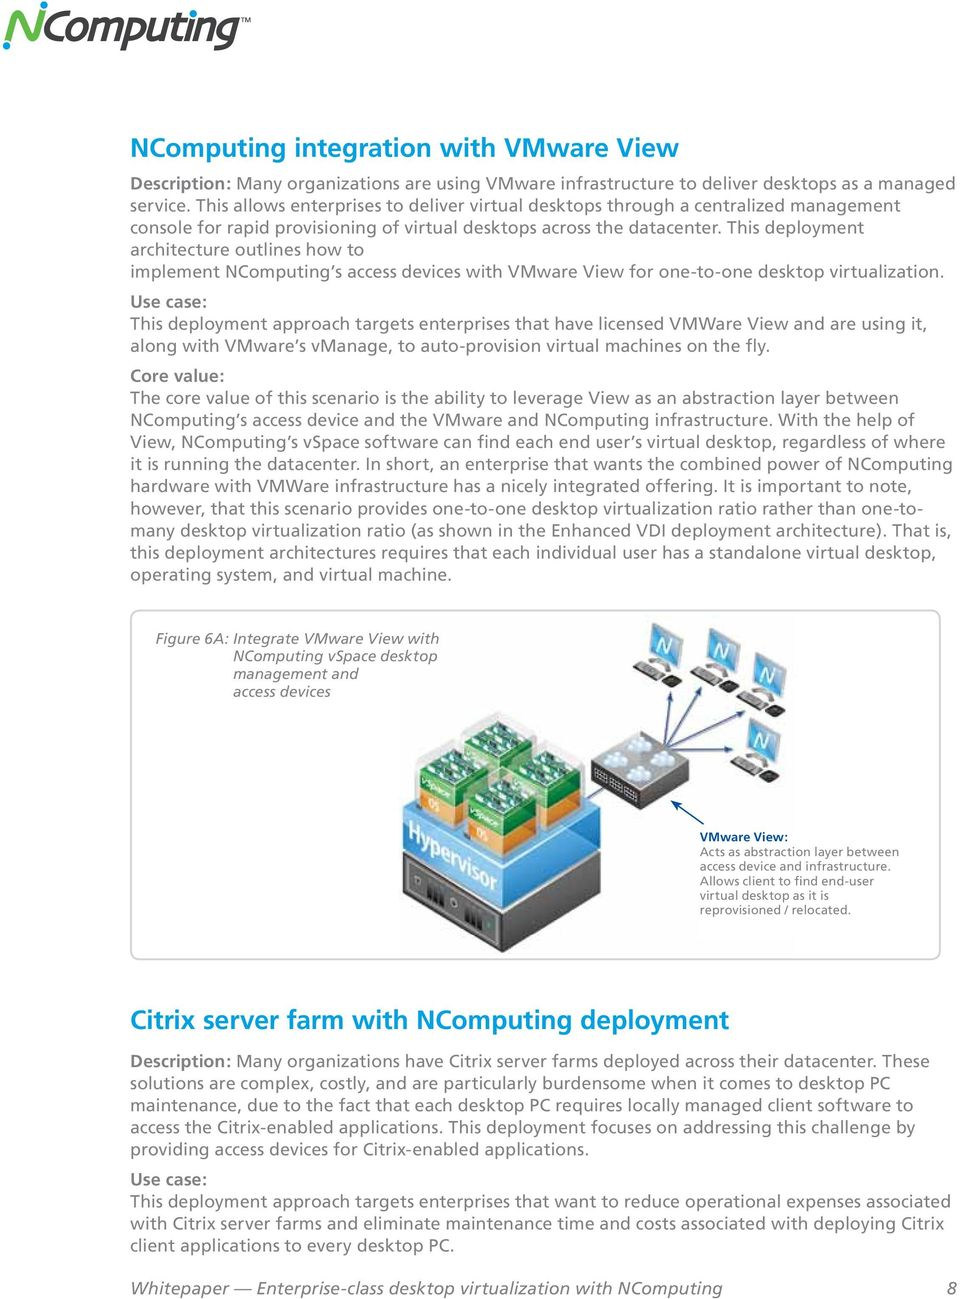 This deployment architecture outlines how to implement NComputing s access devices with VMware View for one-to-one desktop virtualization.